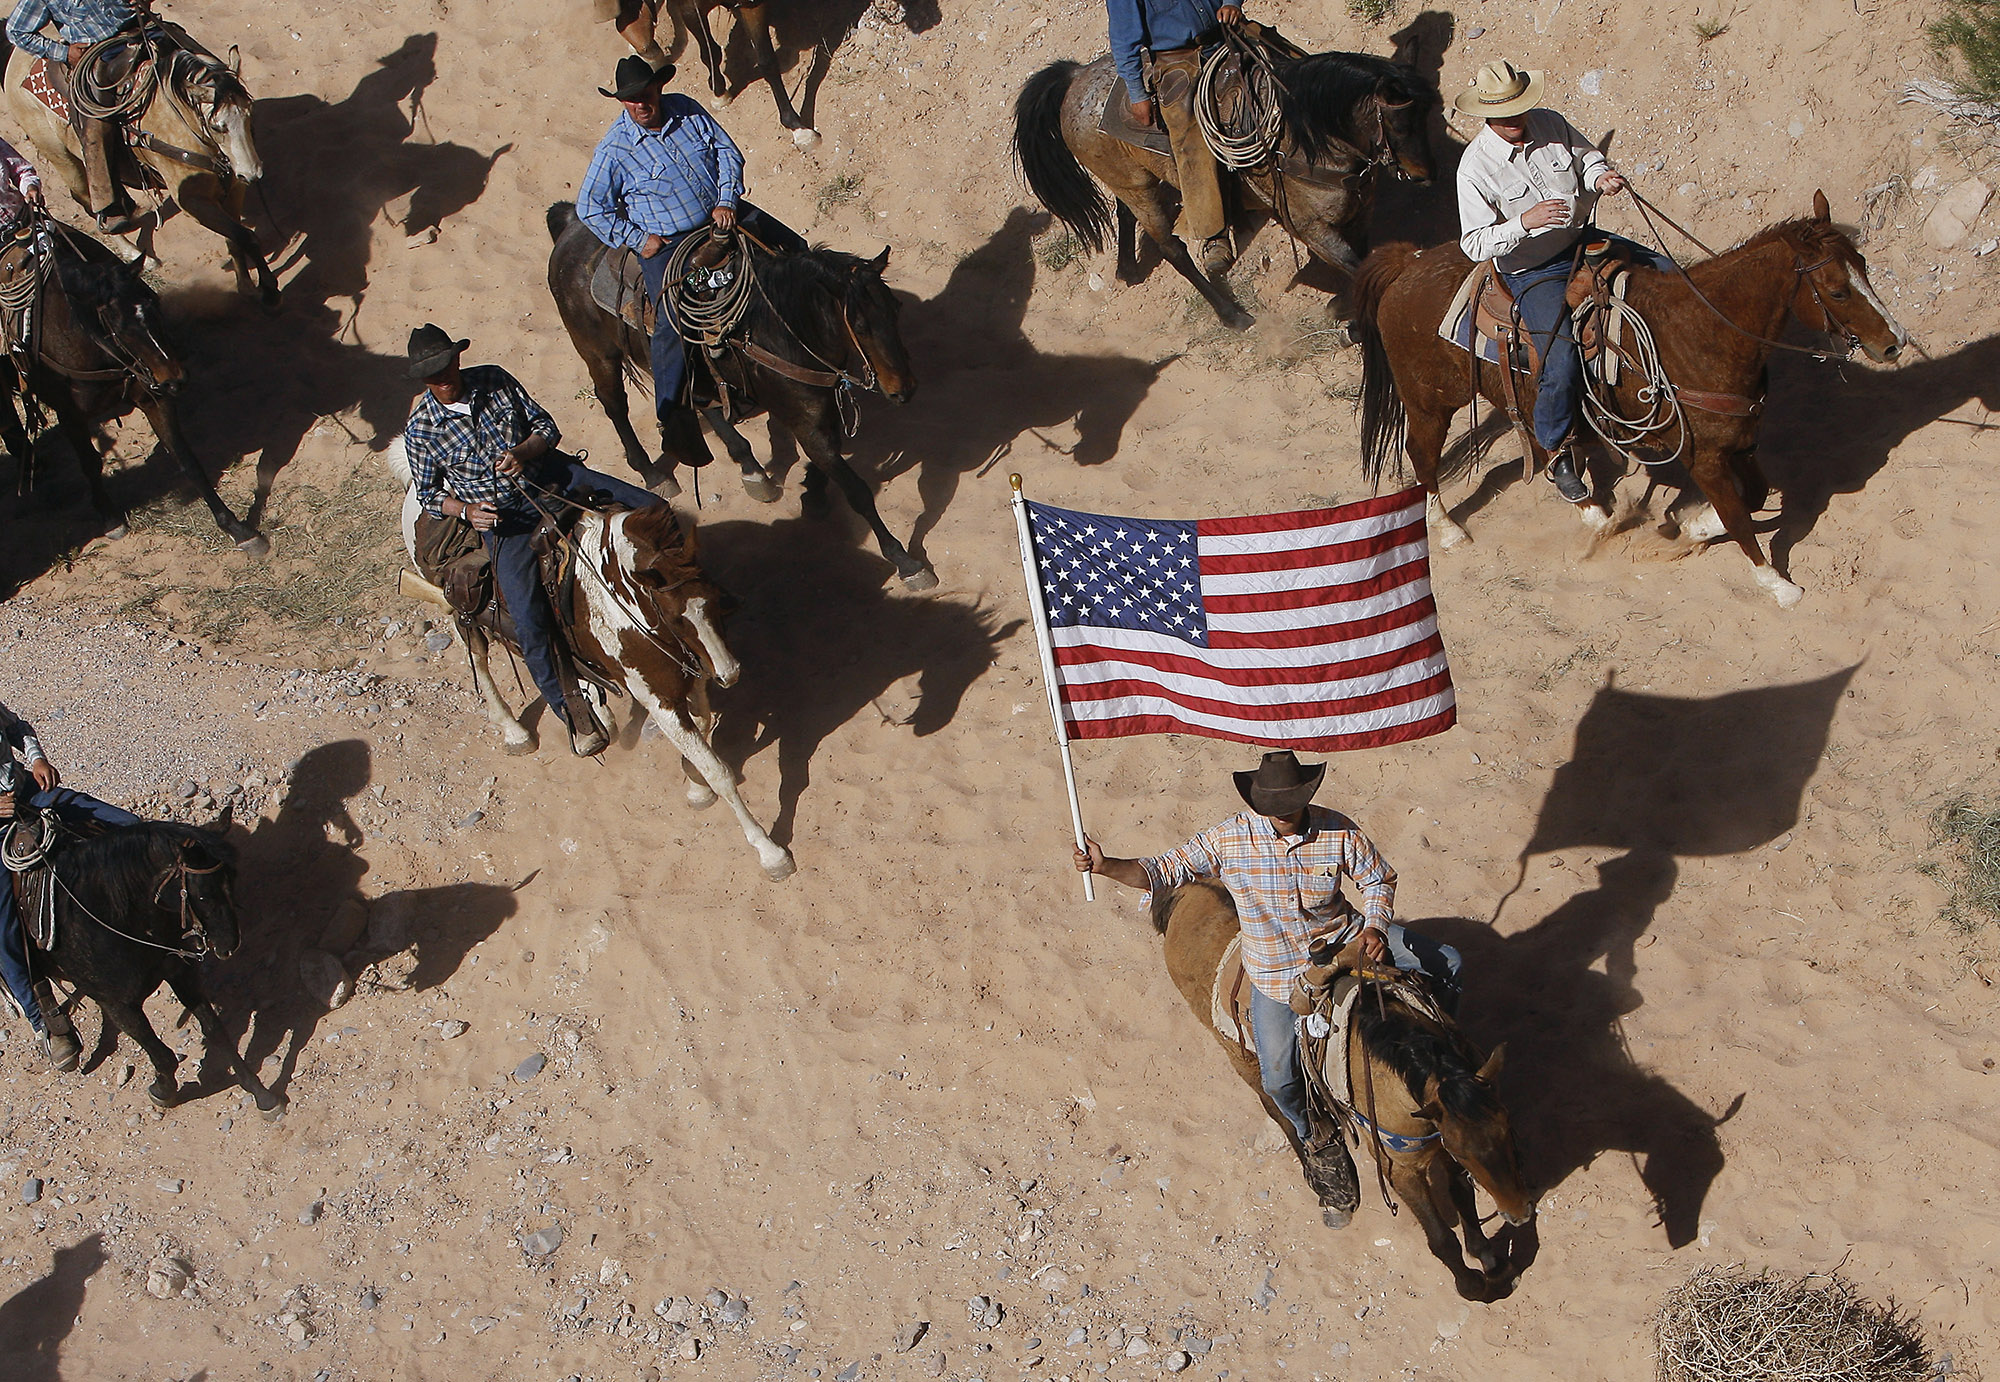 FILE - In this April 12, 2014, file photo, the Bundy family and